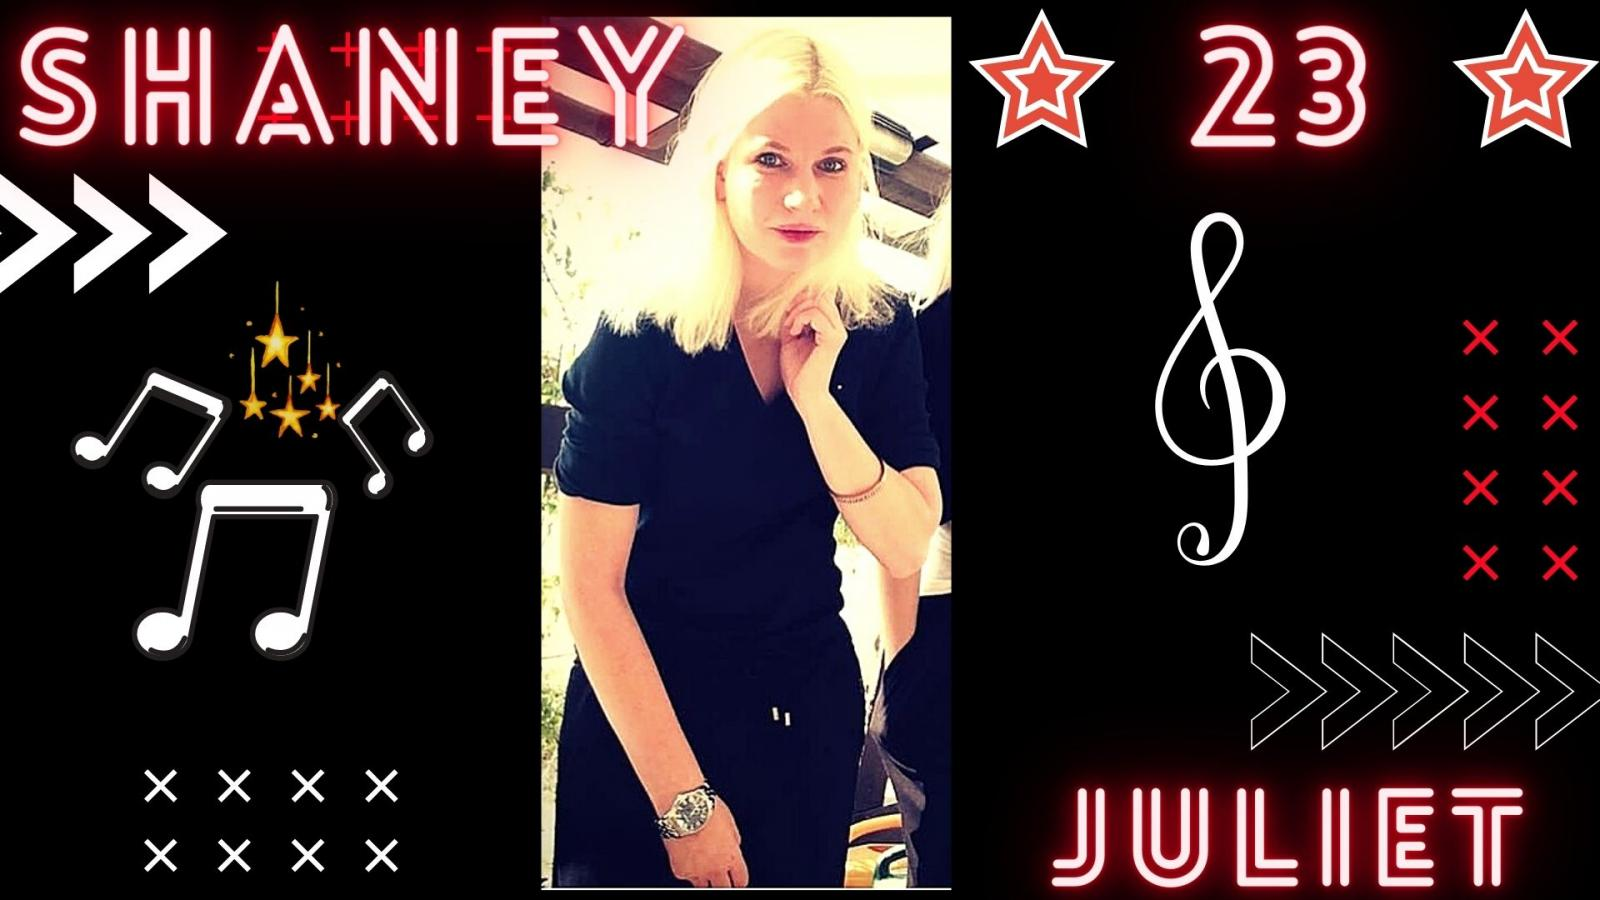 Upcoming: Shaney 23 - JULIET (OFFICIAL VIDEO)